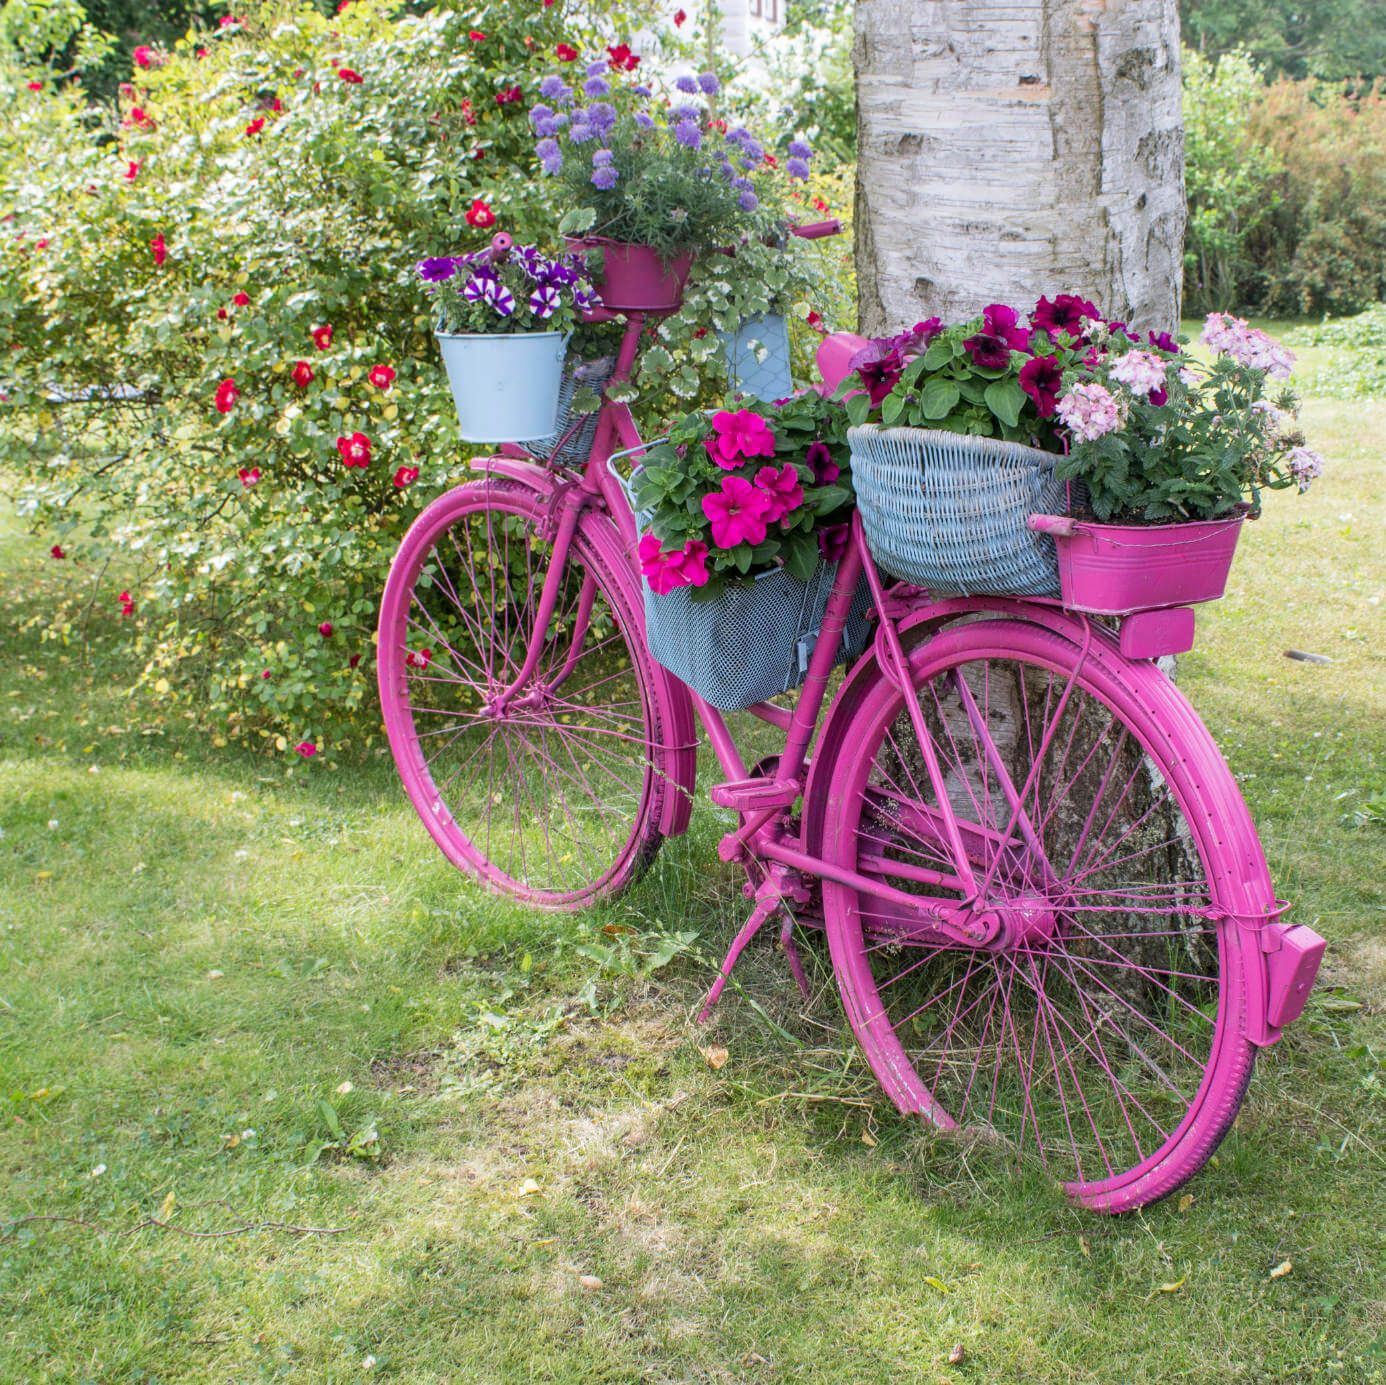 33 bicycle flower planters for the garden or yard | bicycling and